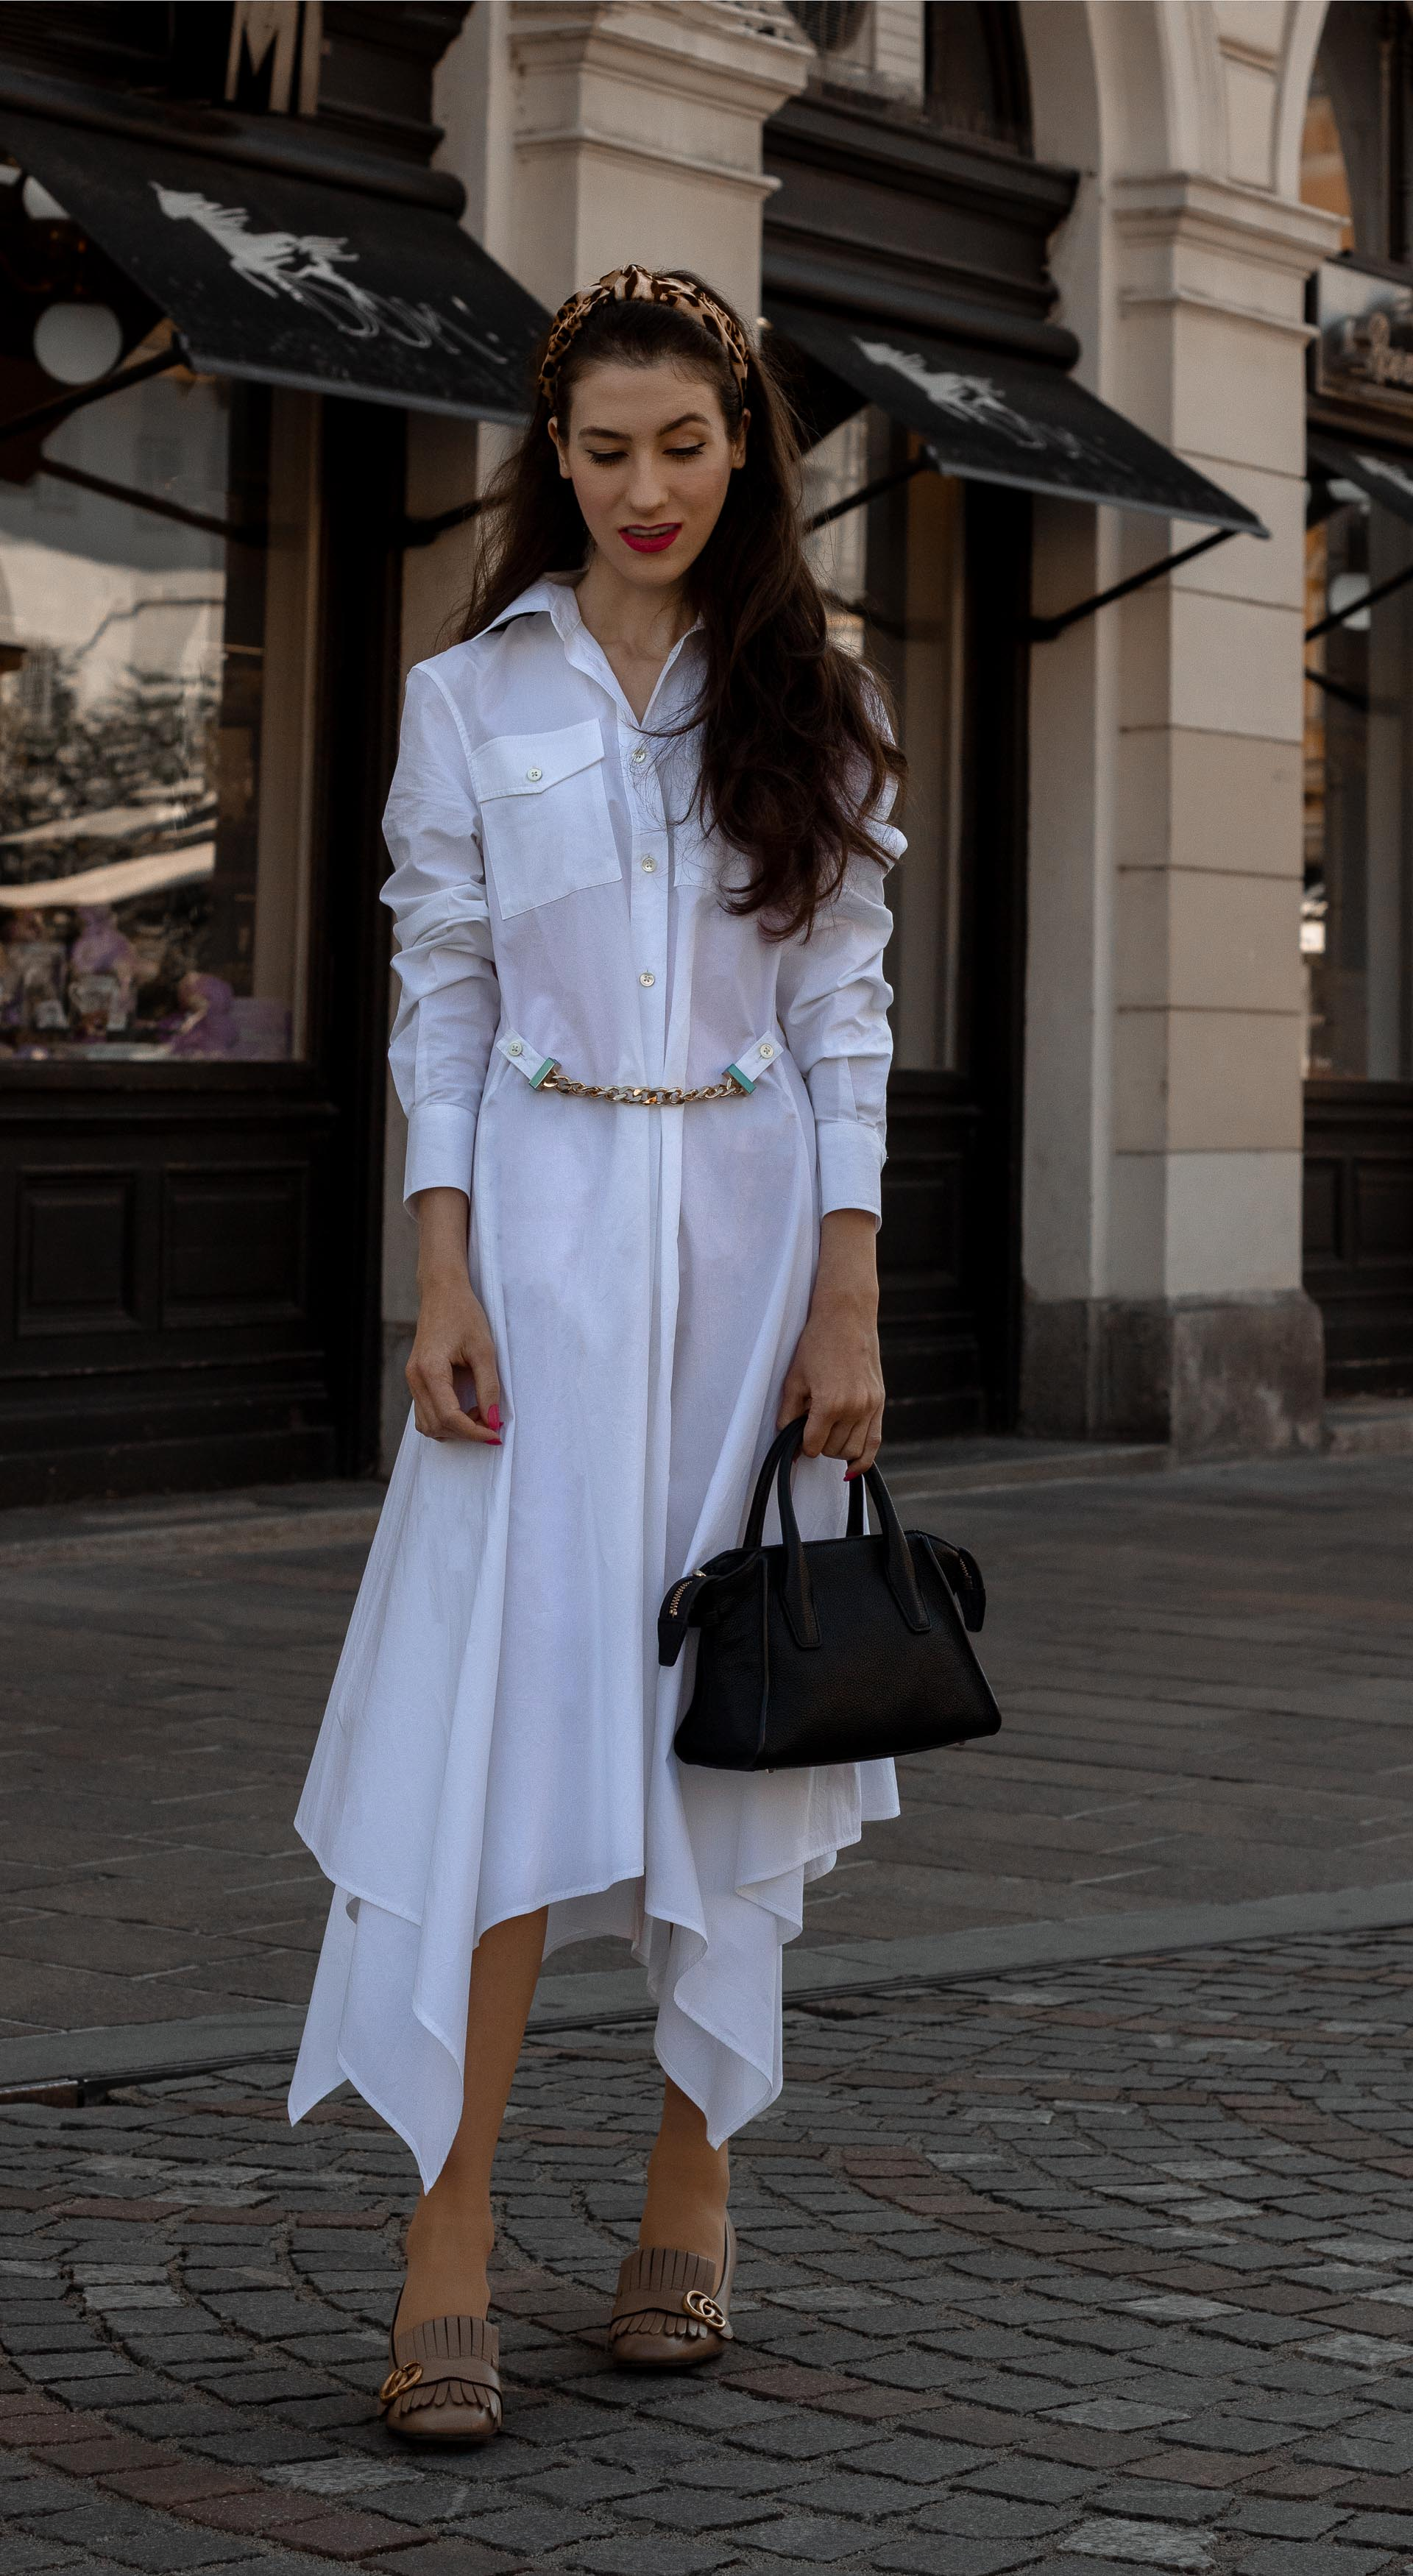 Fashion blogger Veronika Lipar of Brunette from Wall Street dressed in white JW Anderson chain belt shirt dress Gucci heeled loafers Jennifer Behr leopard print headband for work in fall